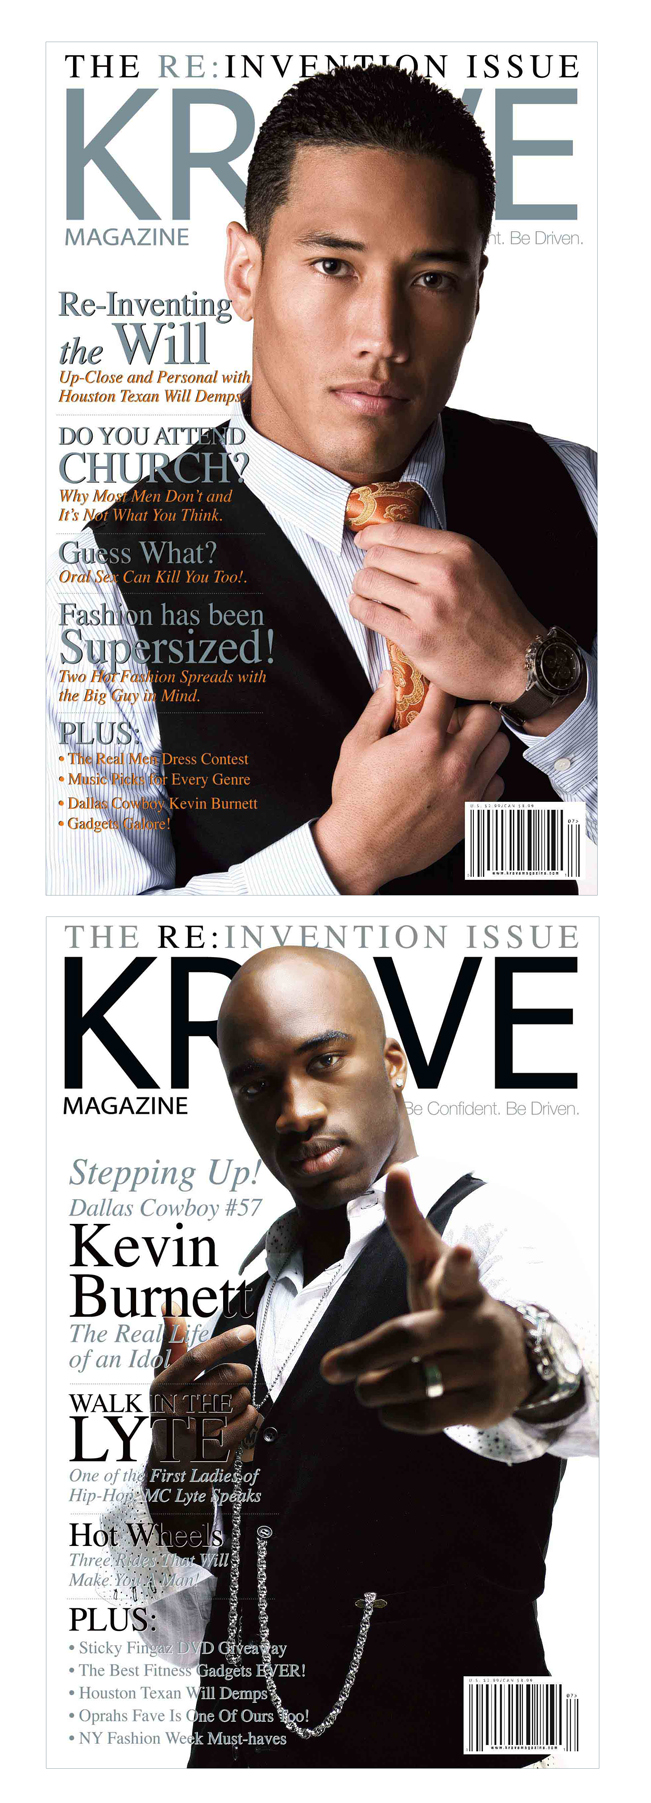 Dallas & Houston, Texas Feb 21, 2008 Krave Magazine  Issue #12 Dbl. Cover w/Will Demps & Kevin Burnett